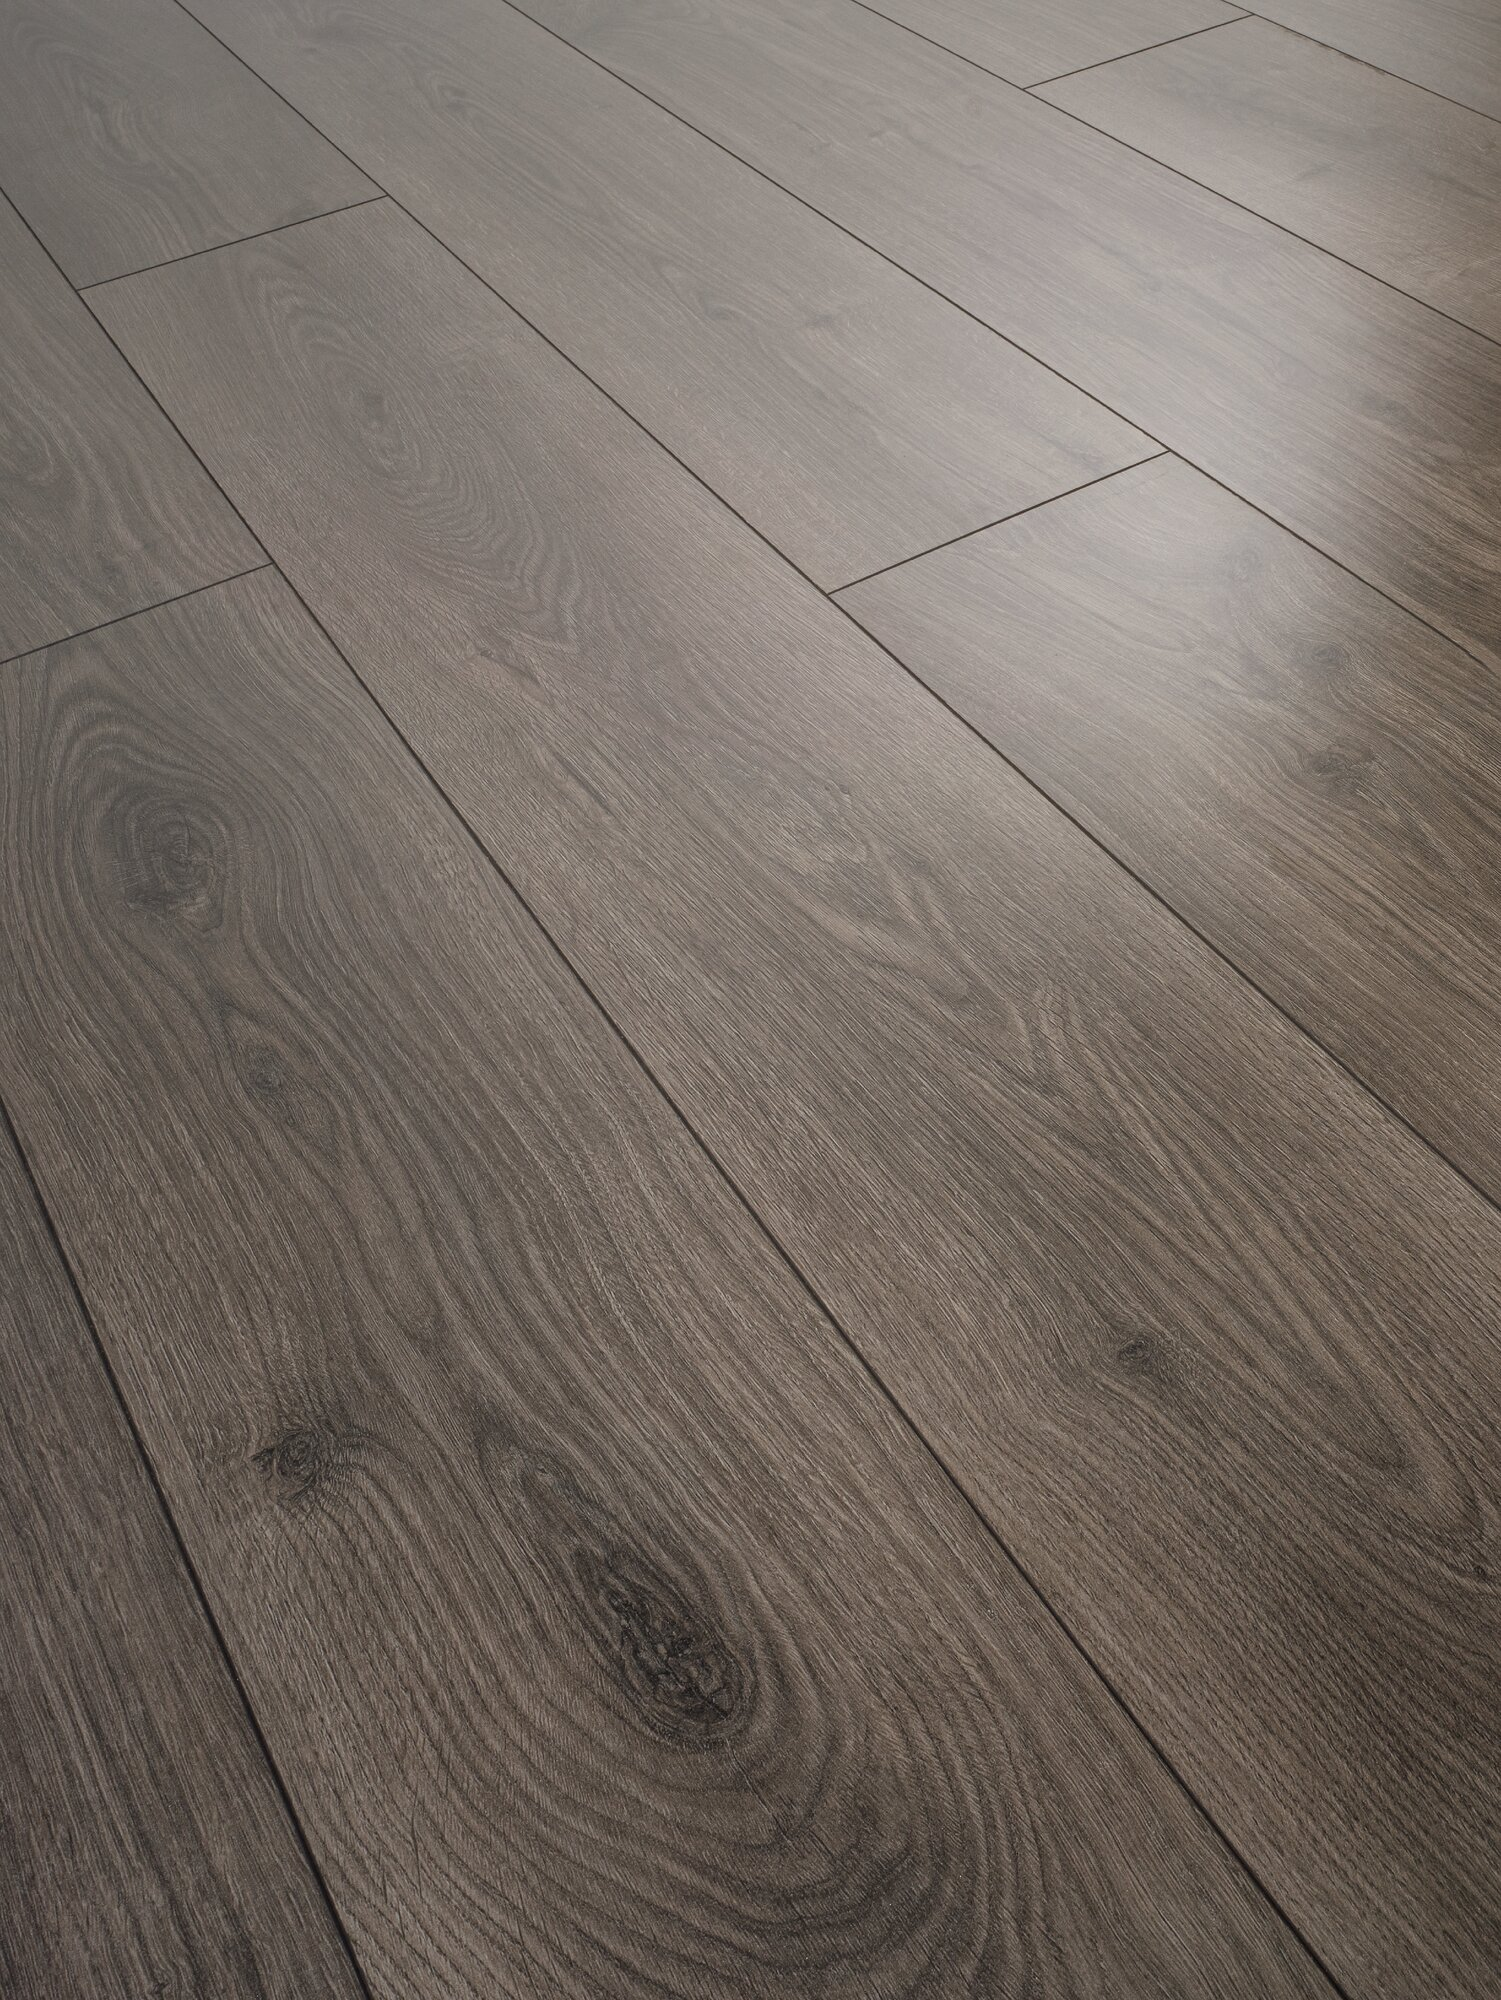 Parchet laminat lucios Swiss Krono Noblesse Brilliant D 4933 Natural Oak Coal poza 2021